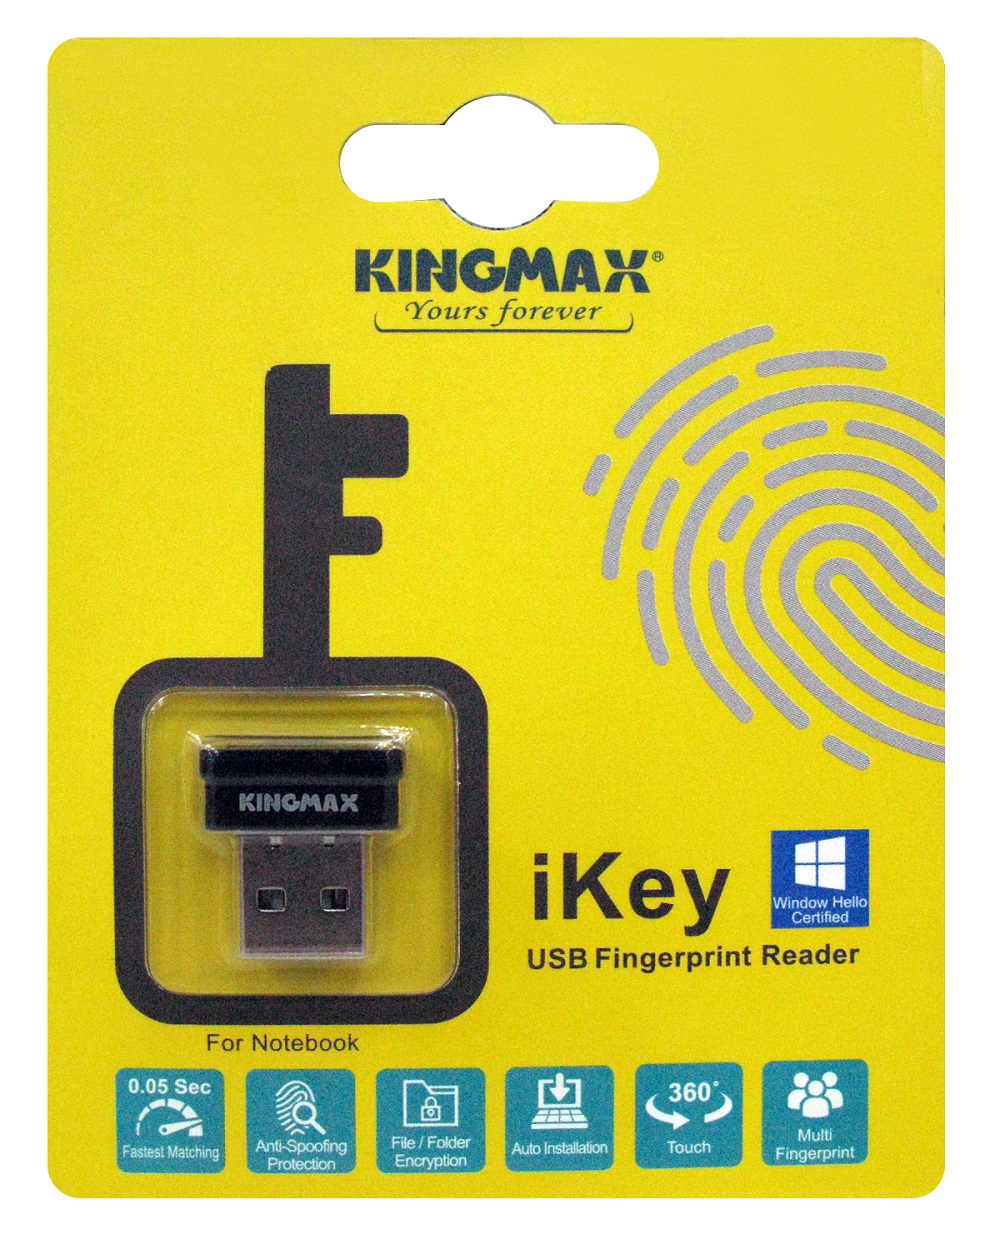 KINGMAX iKey- Tiny USB Fingerprint Reader